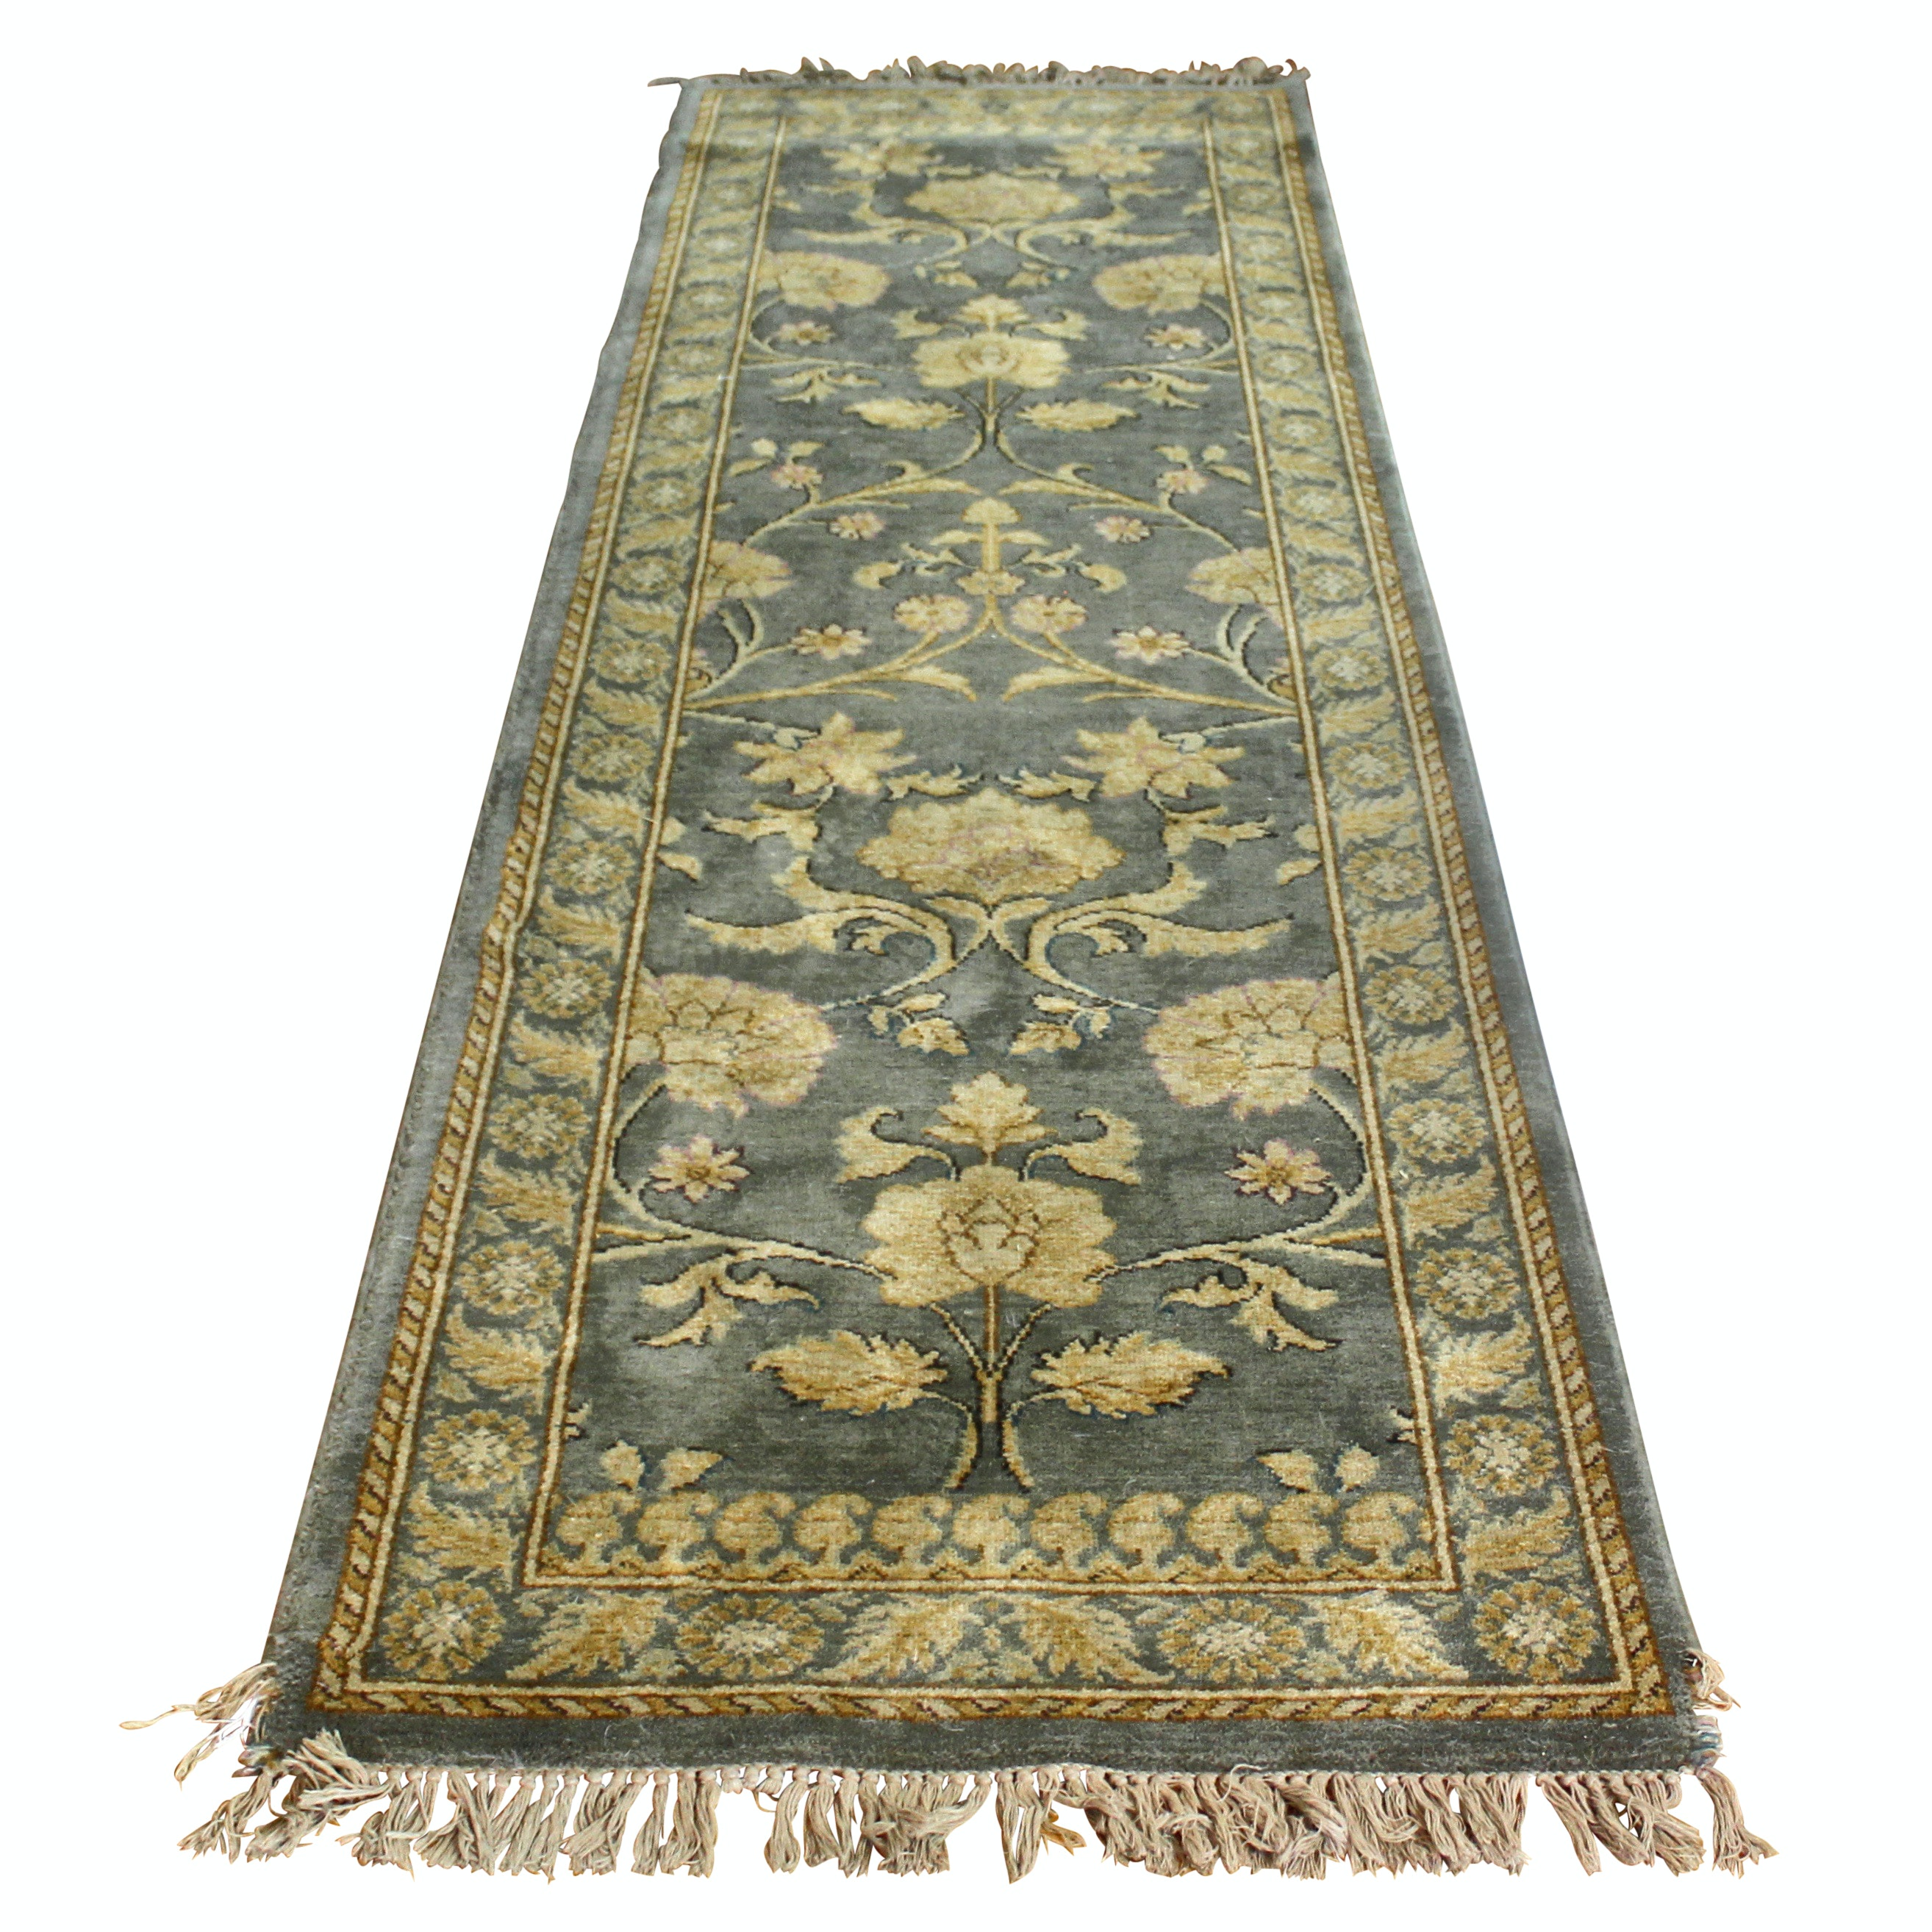 Power Loomed Persian Style Carpet Runner